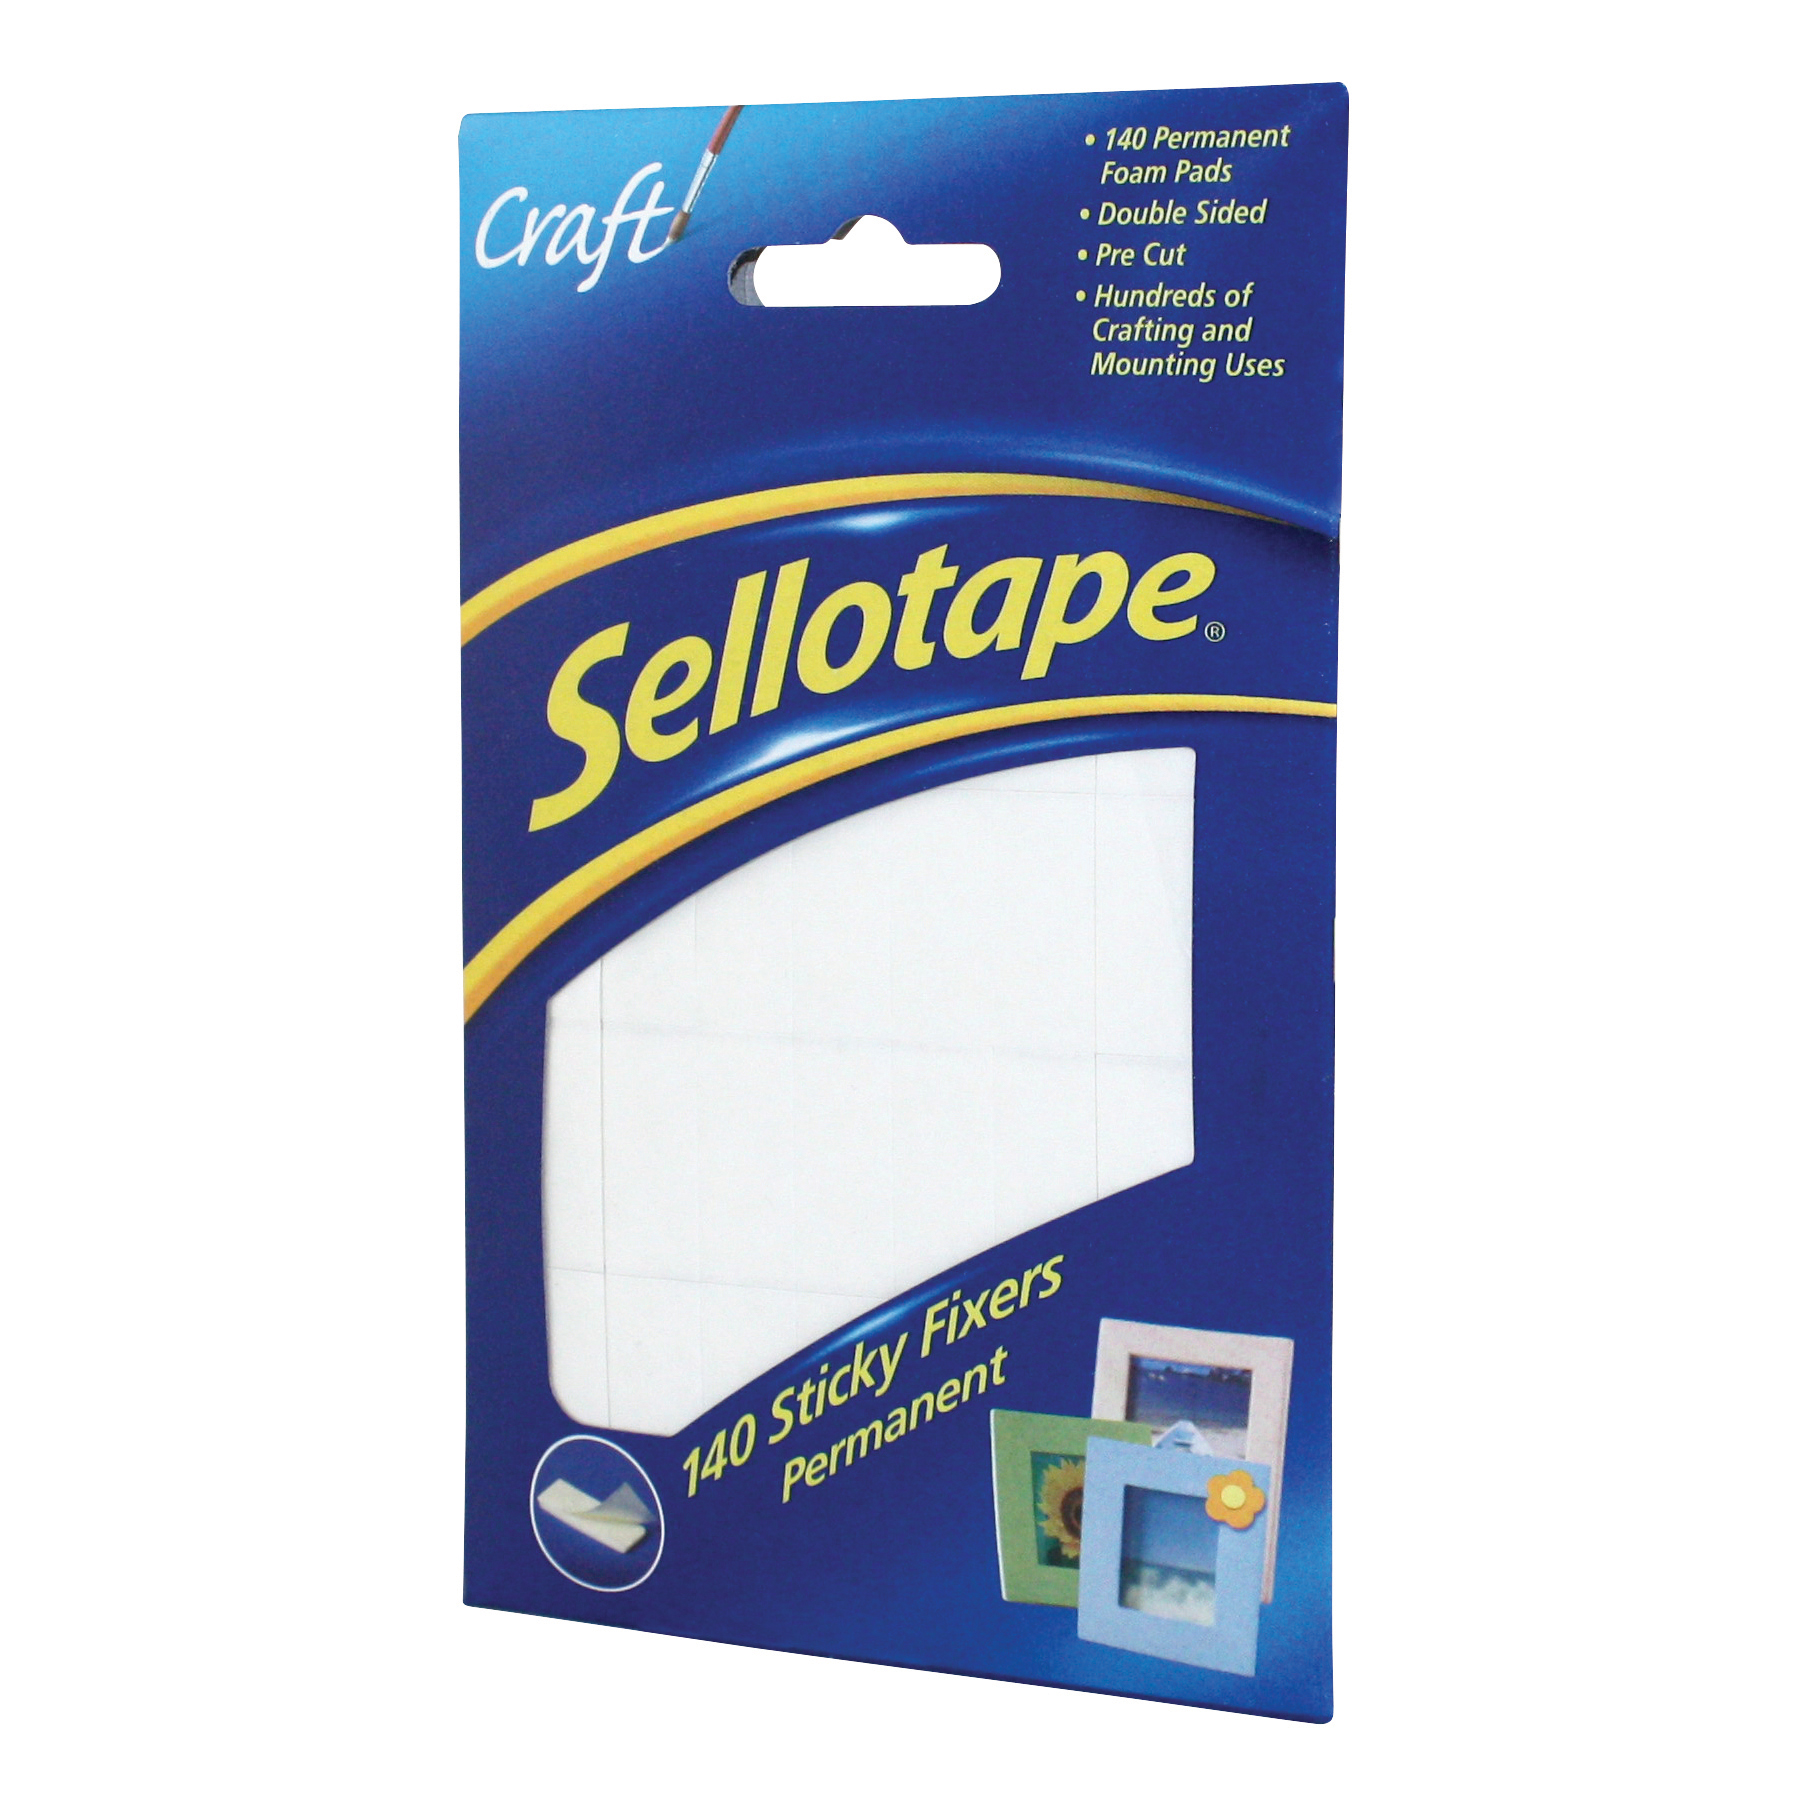 Sellotape Sticky Fixers Double-sided 12x25mm 140 Pads Ref 1445422 Pack 6